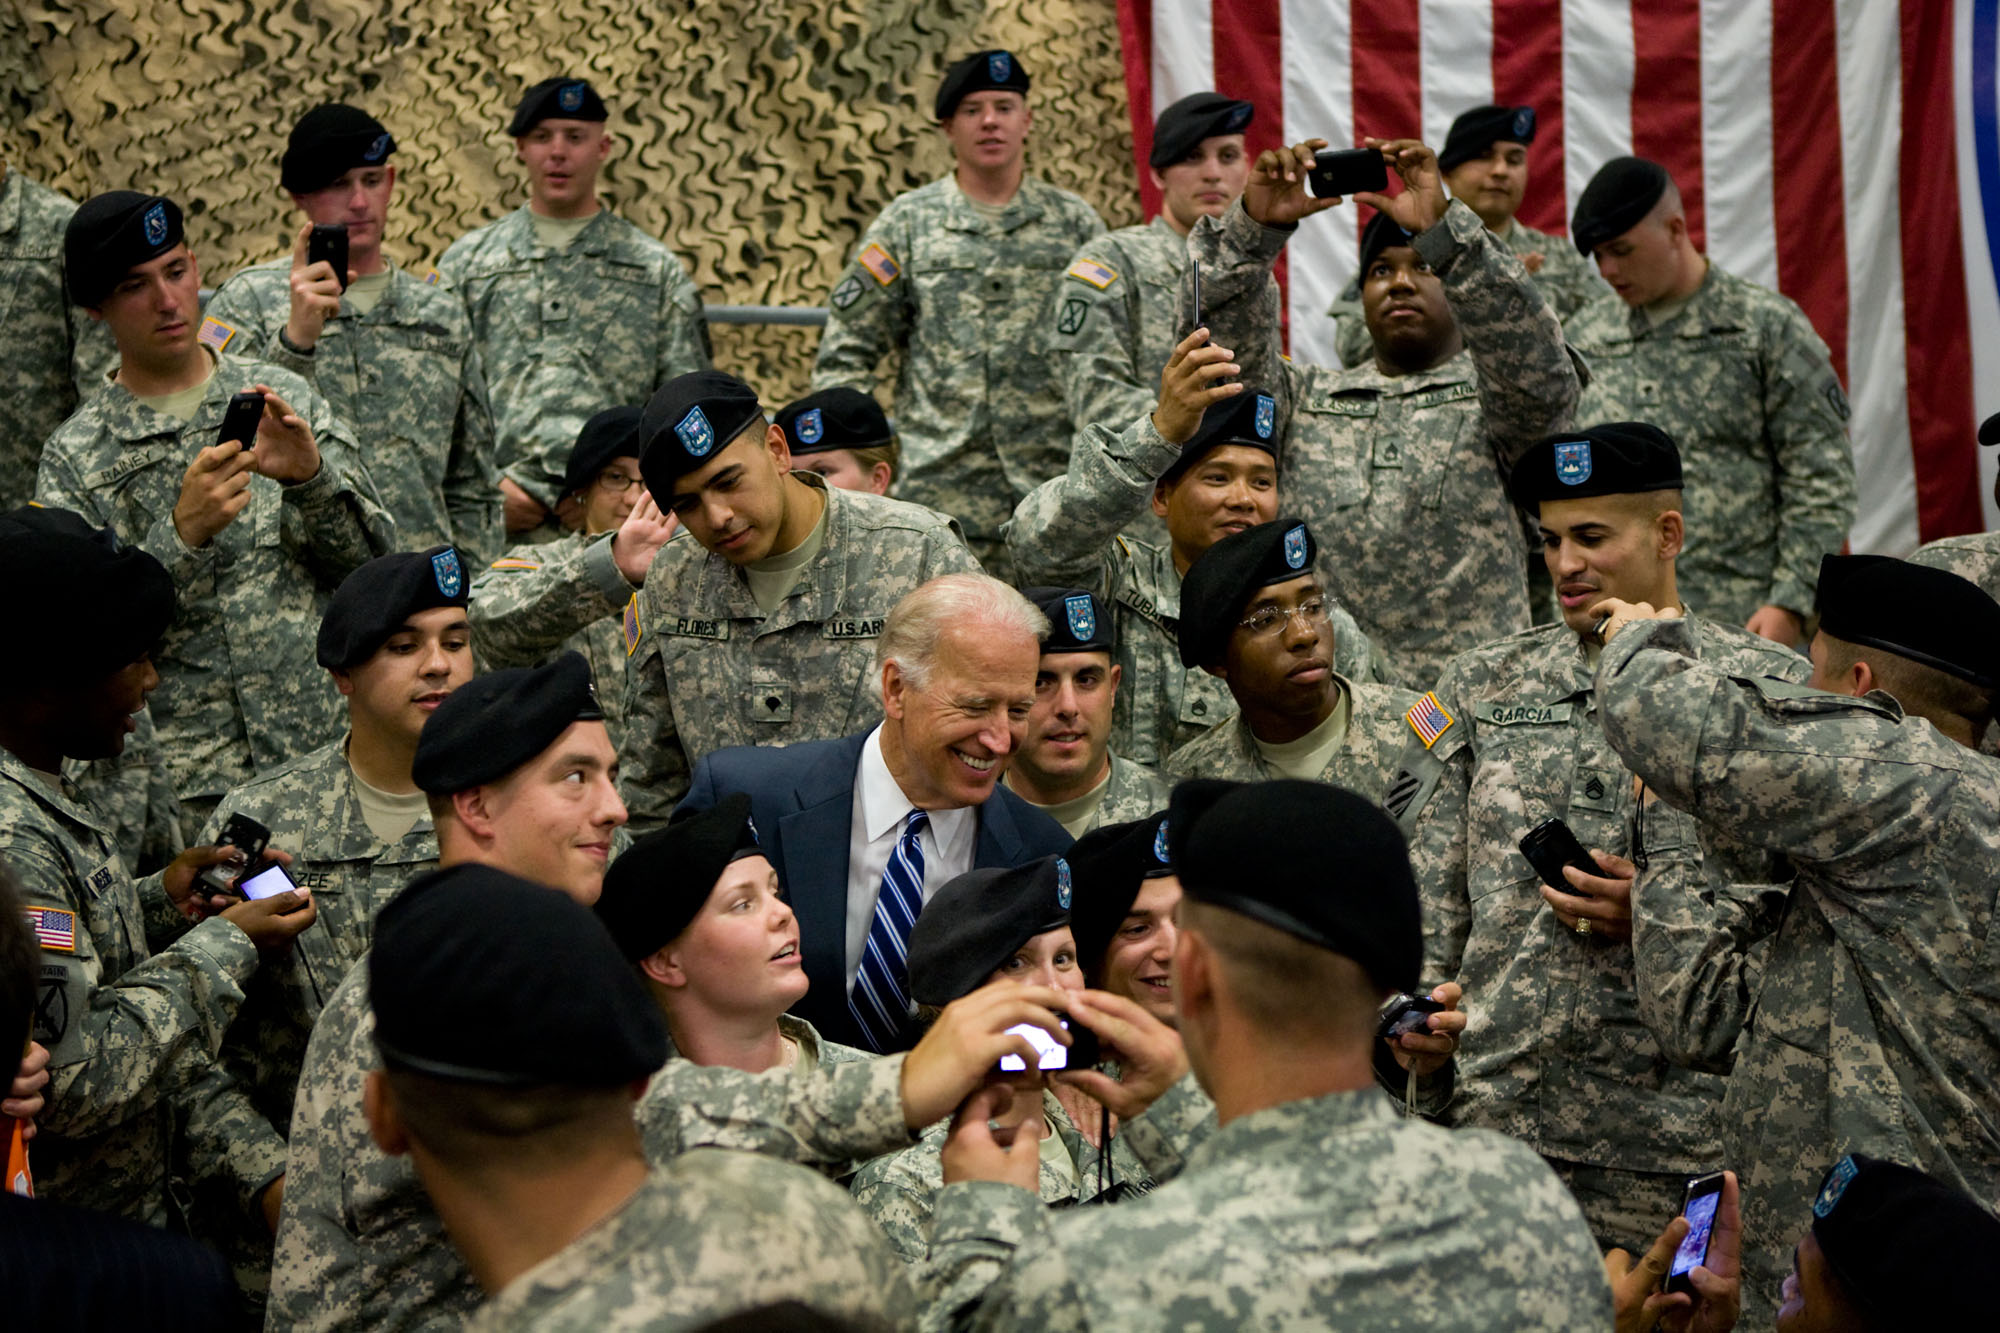 Vice President Biden and Dr. Jill Biden Take Photos at Welcome Home Ceremony at Fort Drum in New York